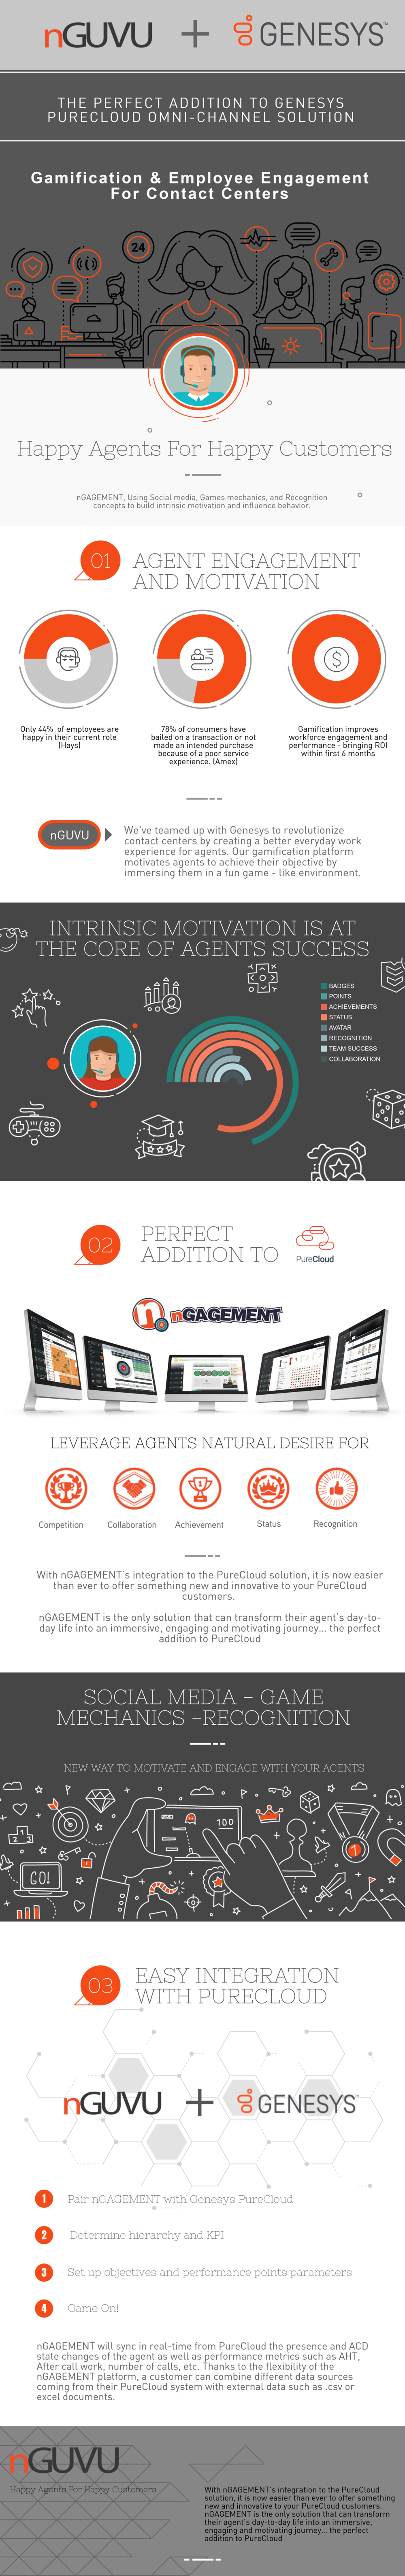 Infographic | nGUVU The Perfect Addition to Genesys PureCloud — Blog